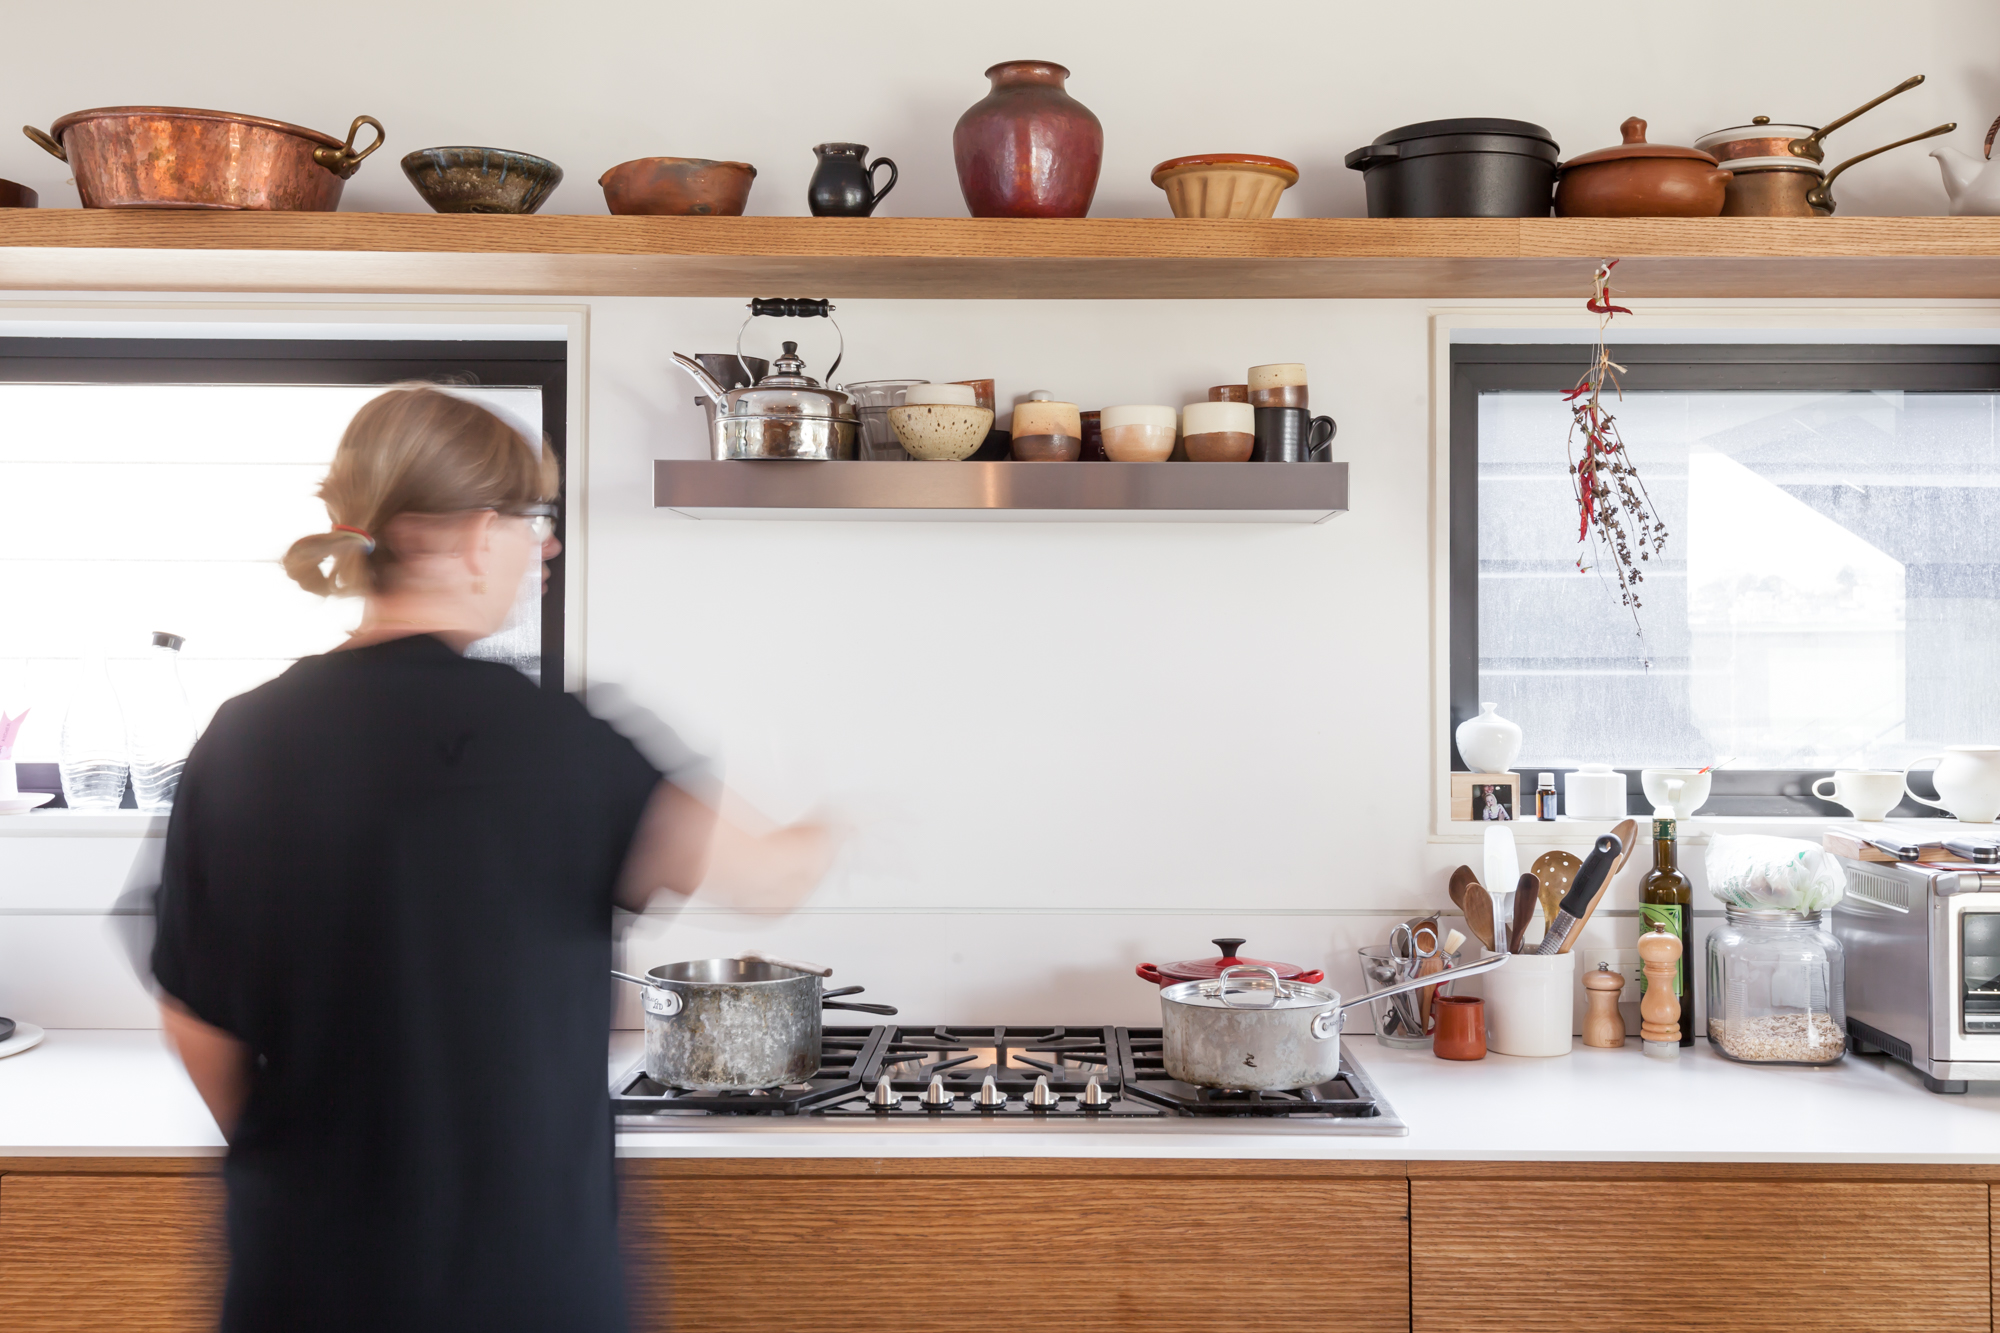 Look Inside the Home Kitchens of Professional Chefs Eater